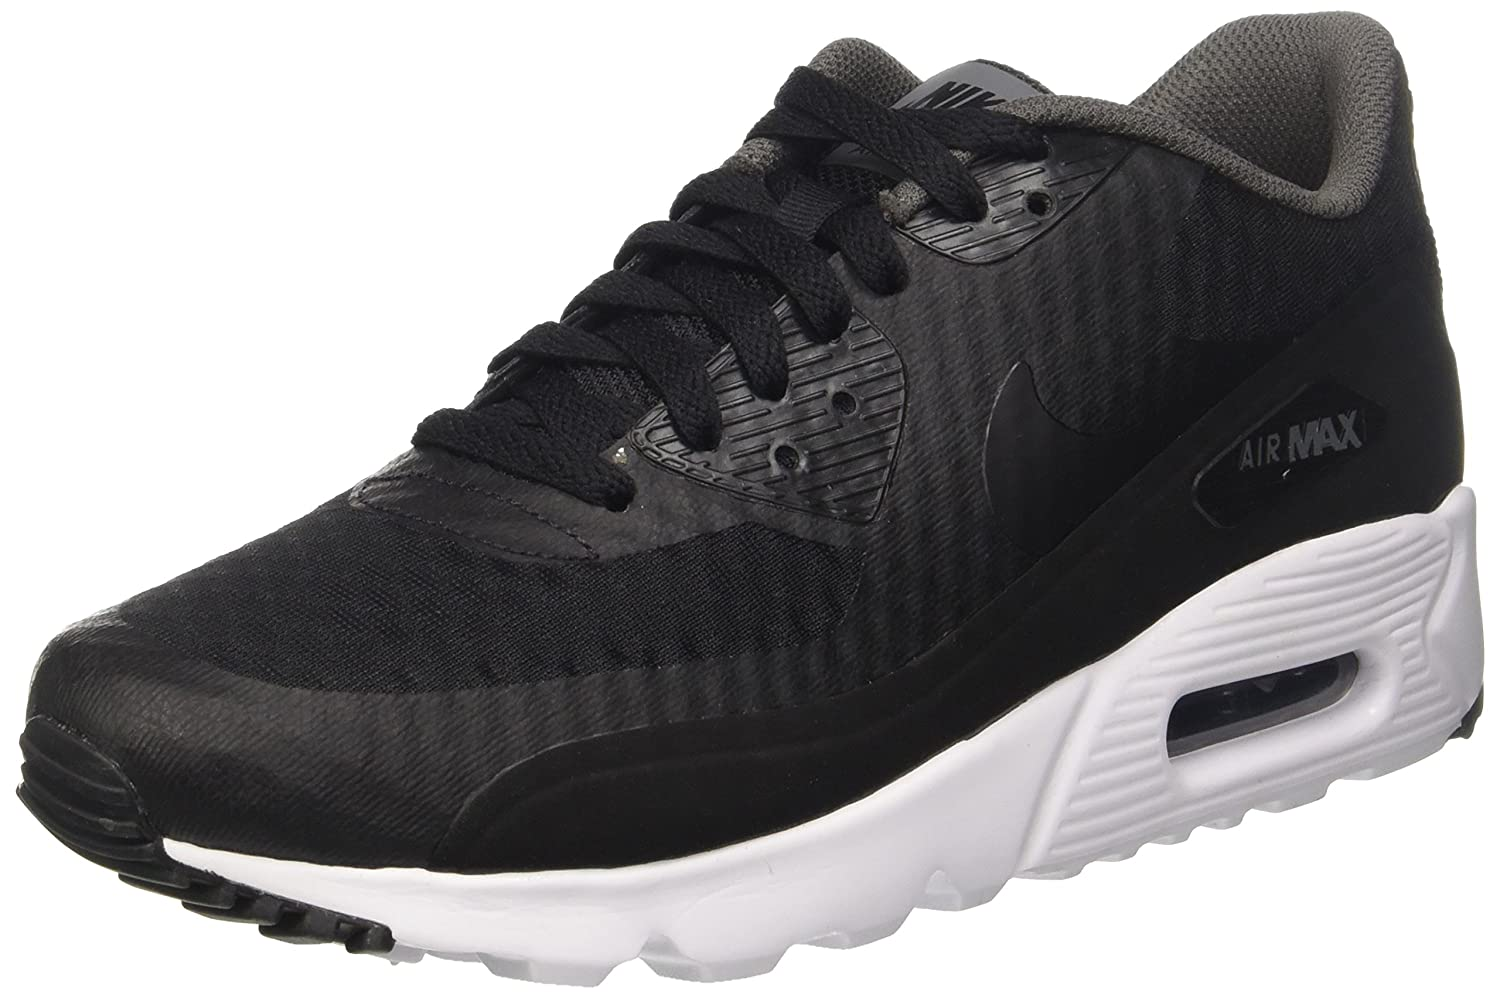 1b74a33a03 Amazon.com | Nike Mens Air Max 90 Ultra Essential, BLACK/BLACK-DARK  GREY-WHITE, 11.5 M US | Road Running